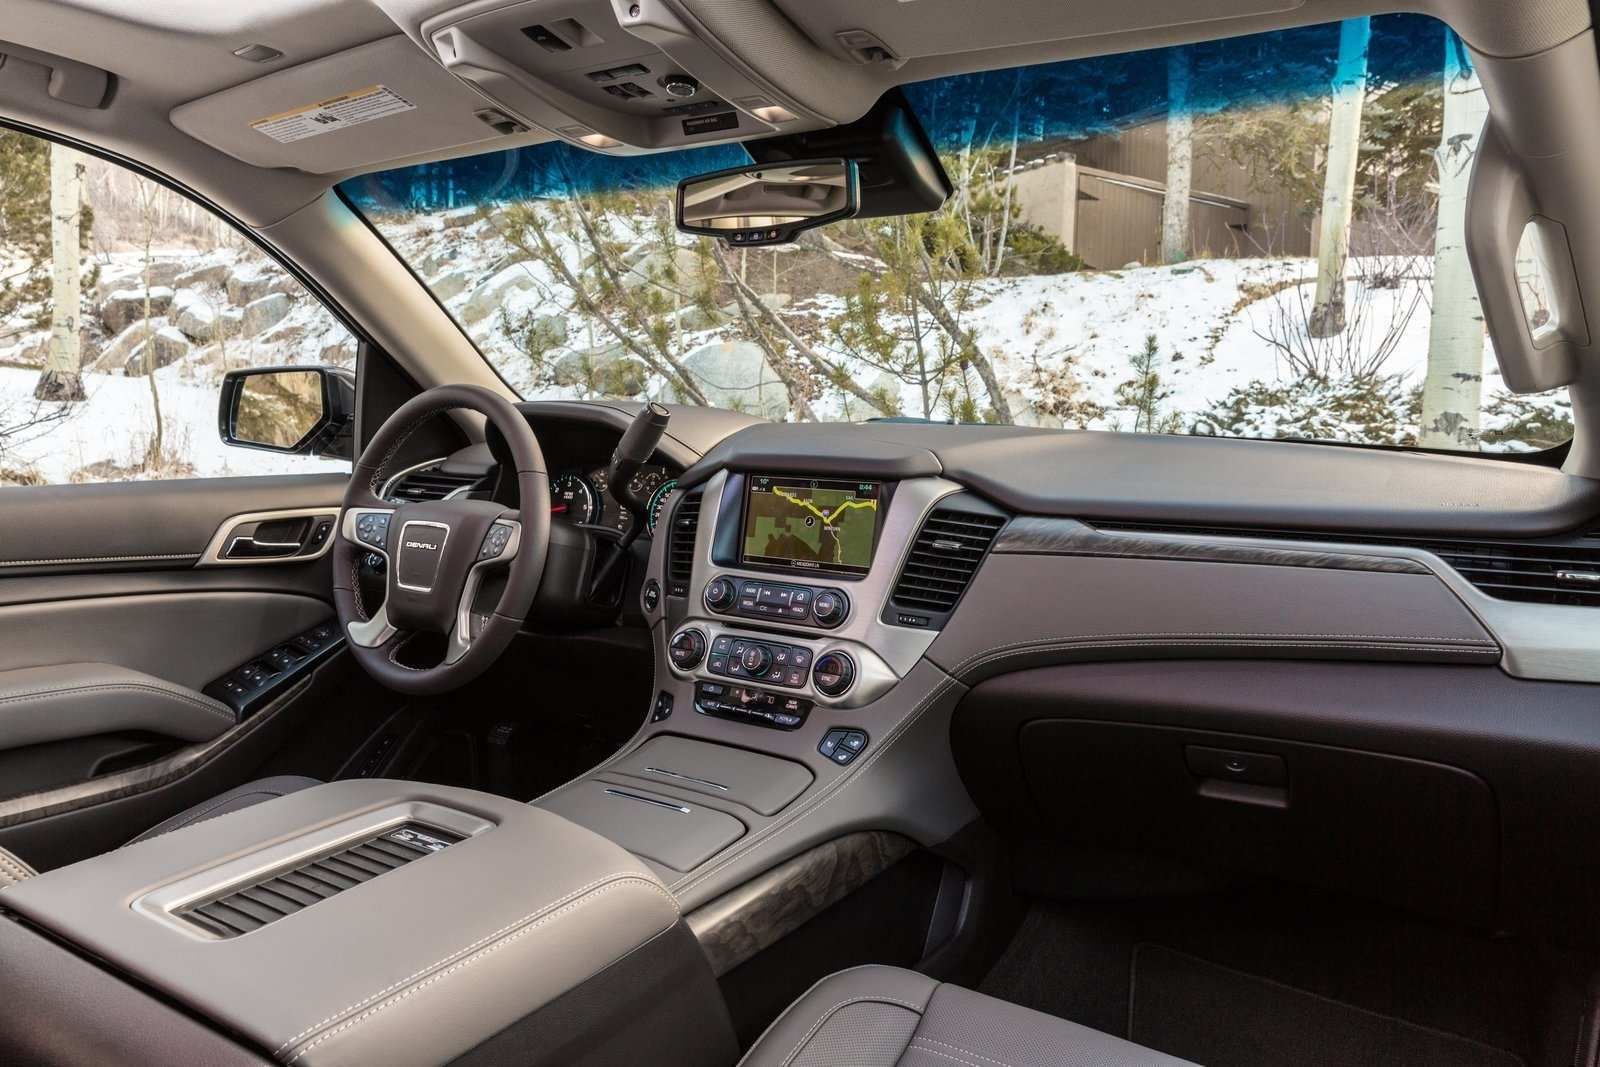 76 Gallery of Best Gmc Denali 2019 Interior Exterior And Review Images for Best Gmc Denali 2019 Interior Exterior And Review